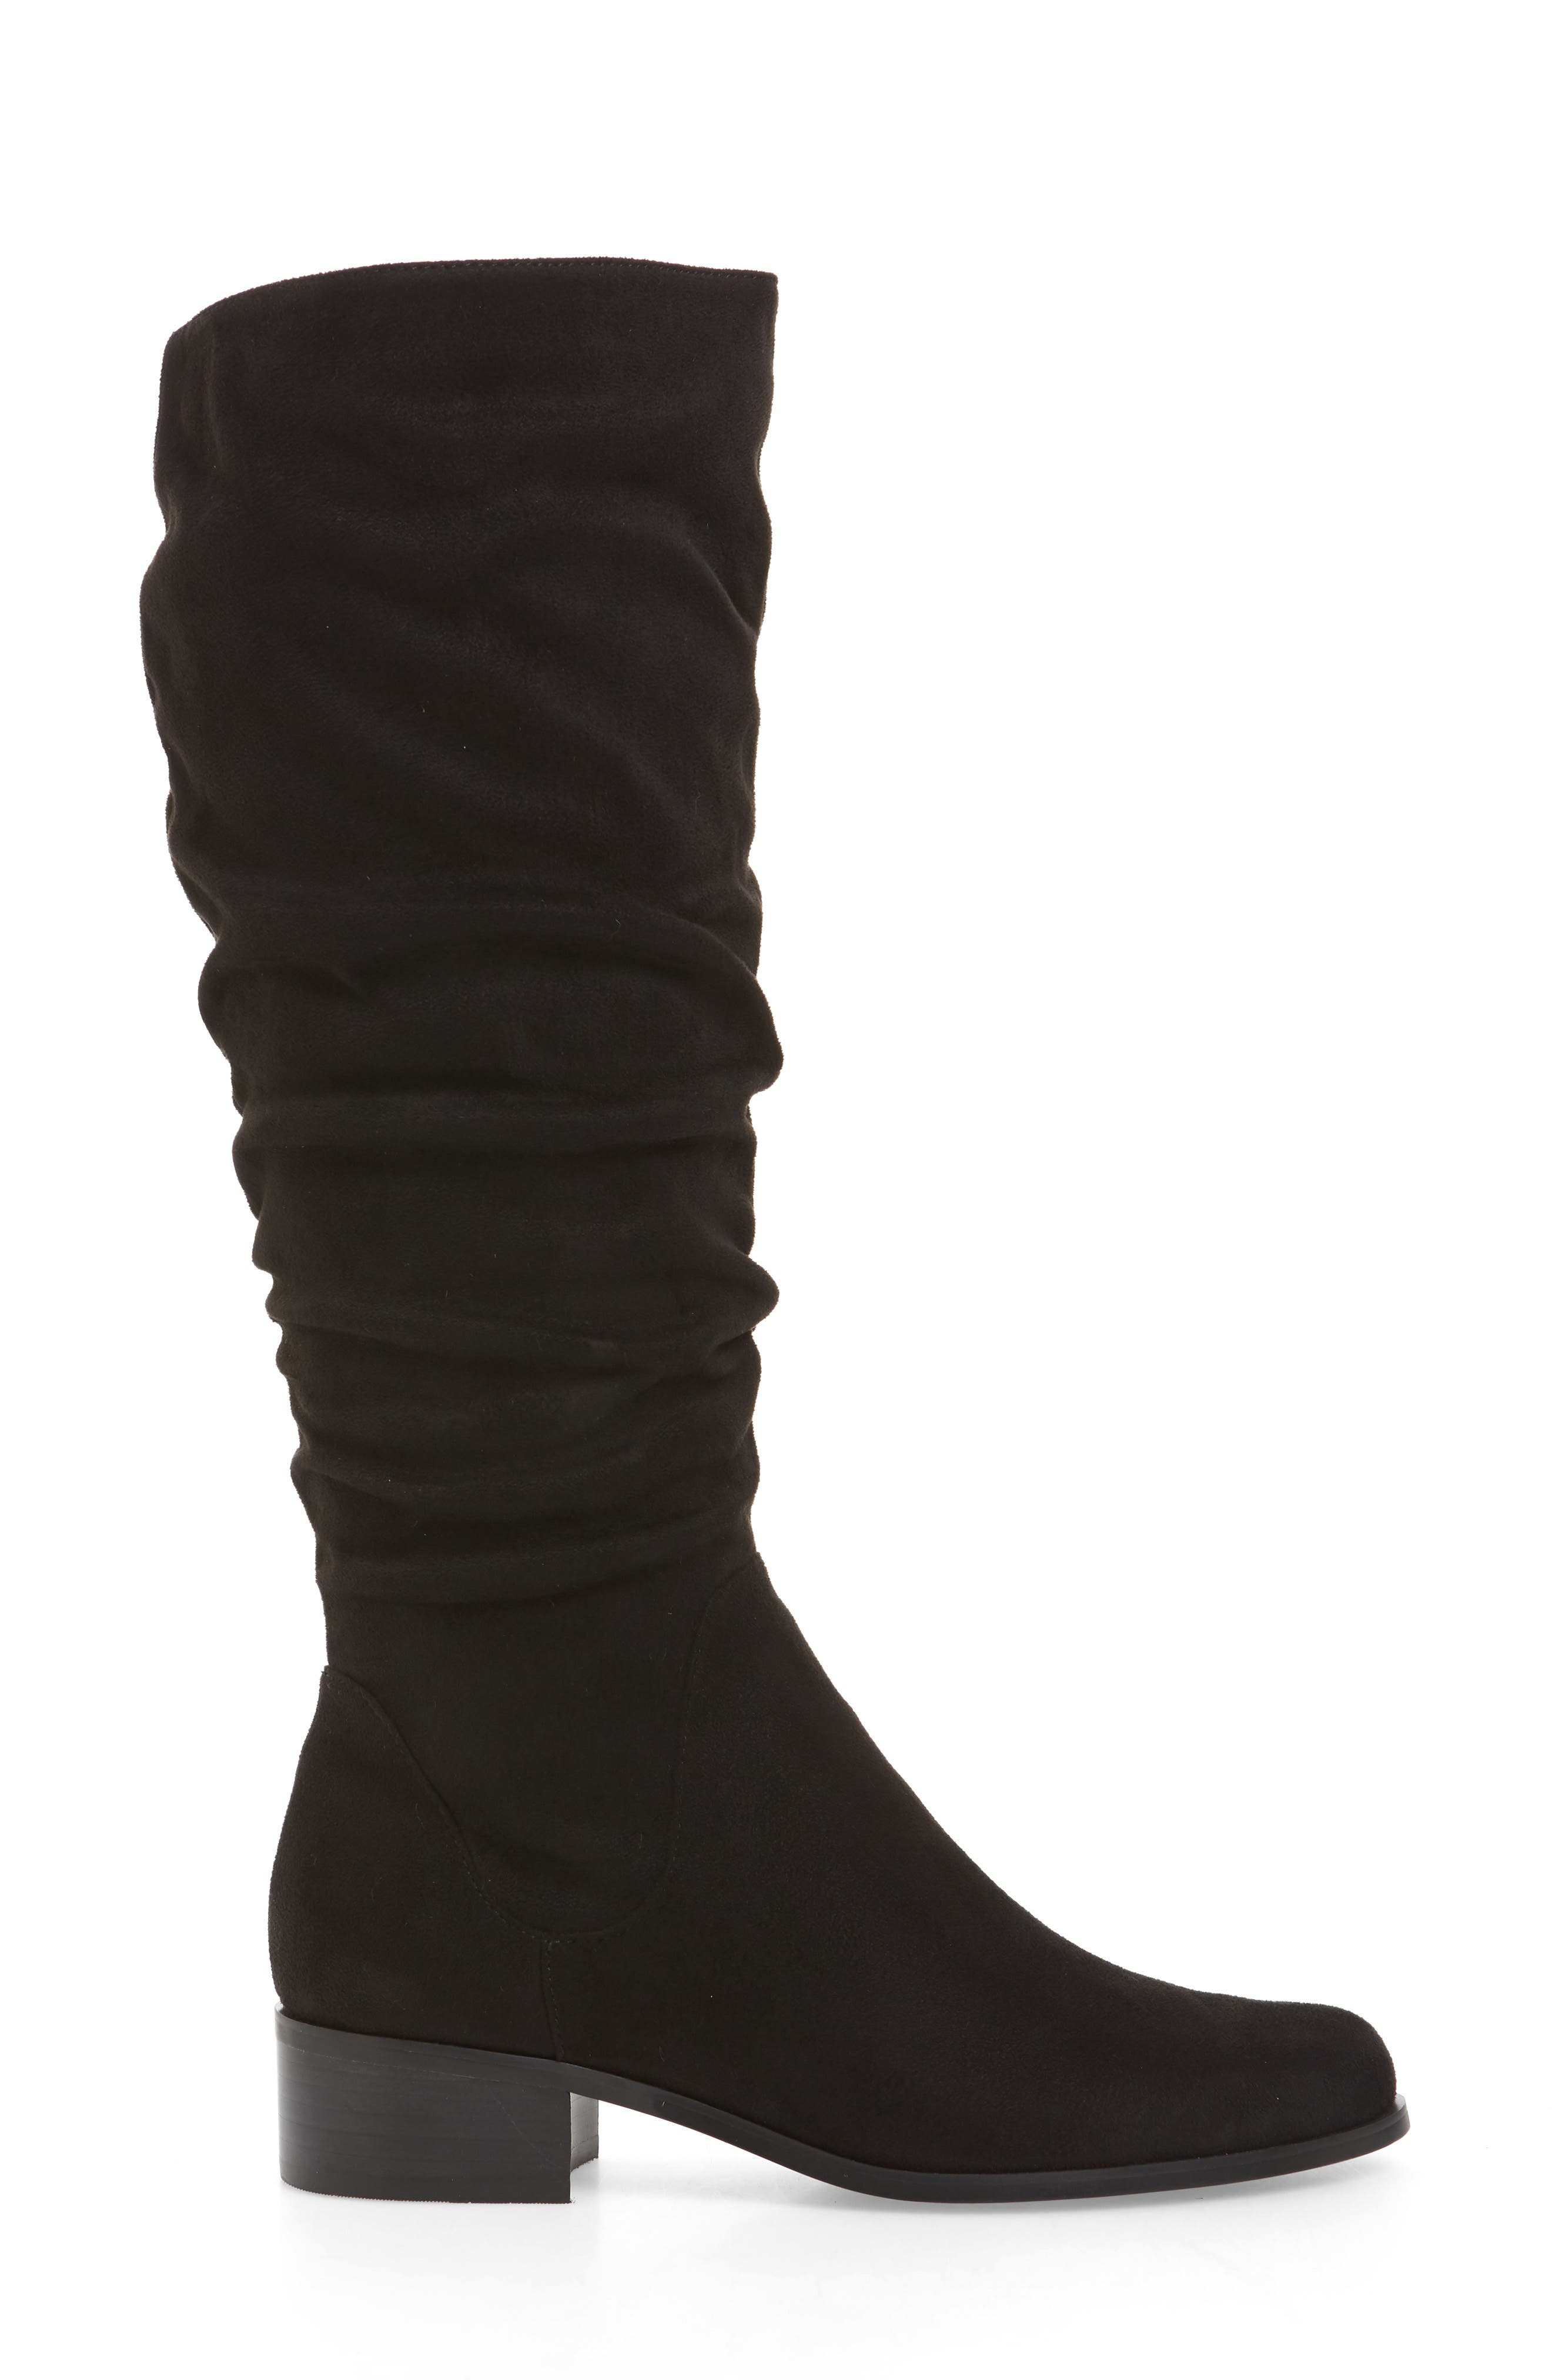 Guru Slouchy Knee High Boot,                             Alternate thumbnail 3, color,                             001